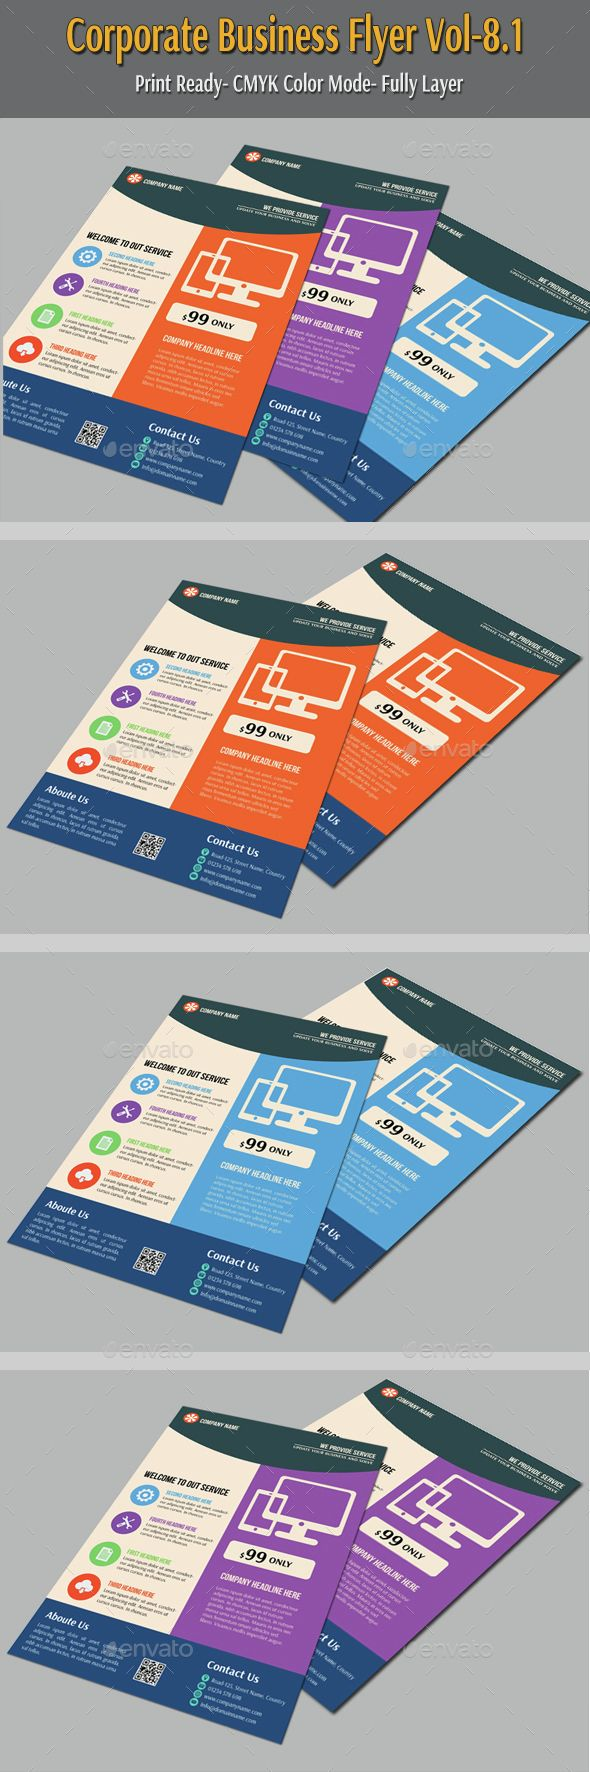 Corporate Business Flyer Vol8.1 — Vector EPS #marketing #designs flyer • Available here → https://graphicriver.net/item/corporate-business-flyer-vol81/6607916?ref=pxcr